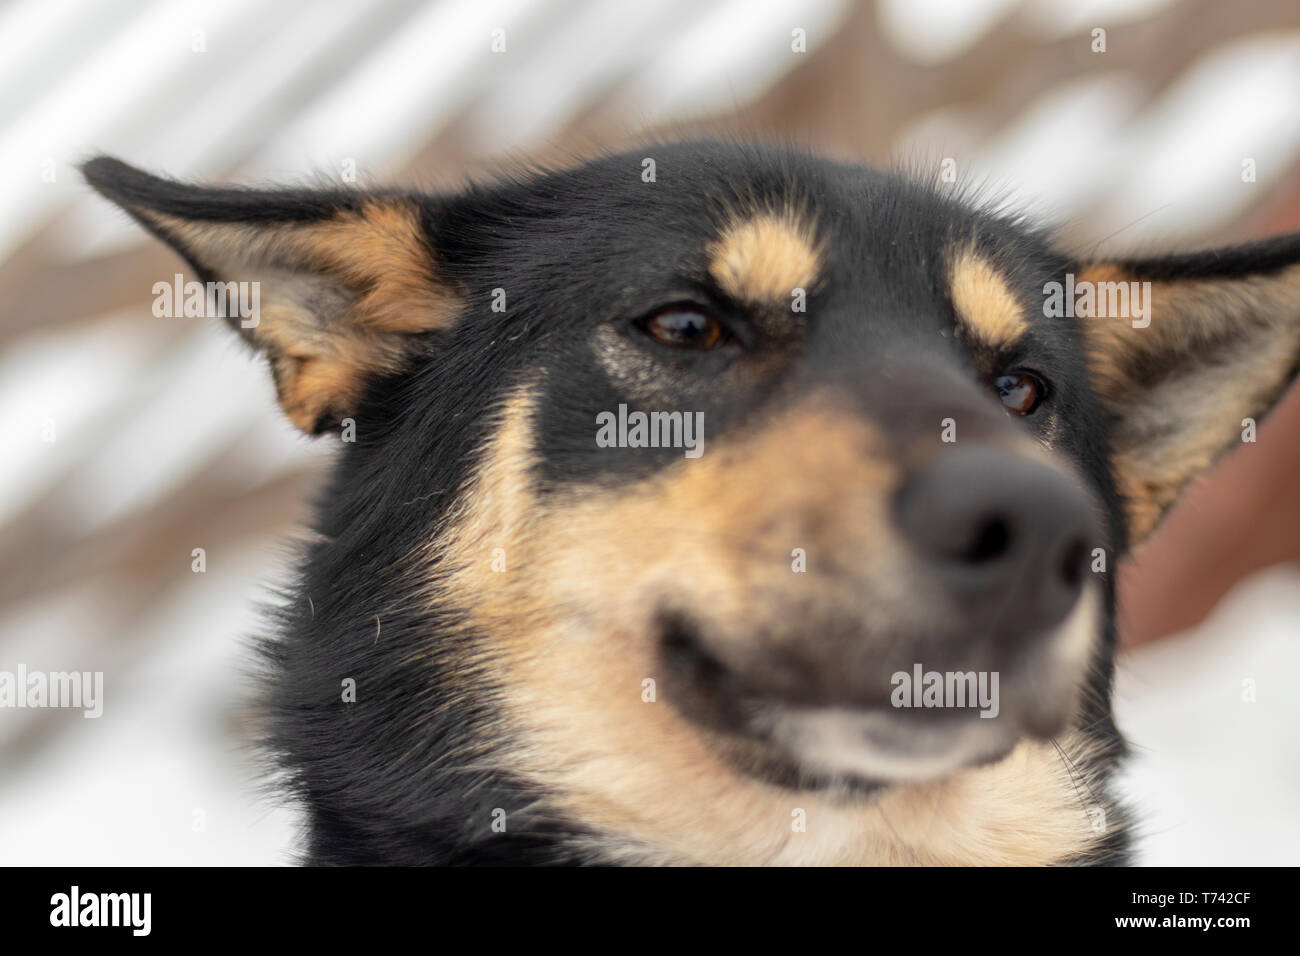 Funny dog disgust, denial, disagreement face. Don't like that. grins teeth pet. White background - Stock Image